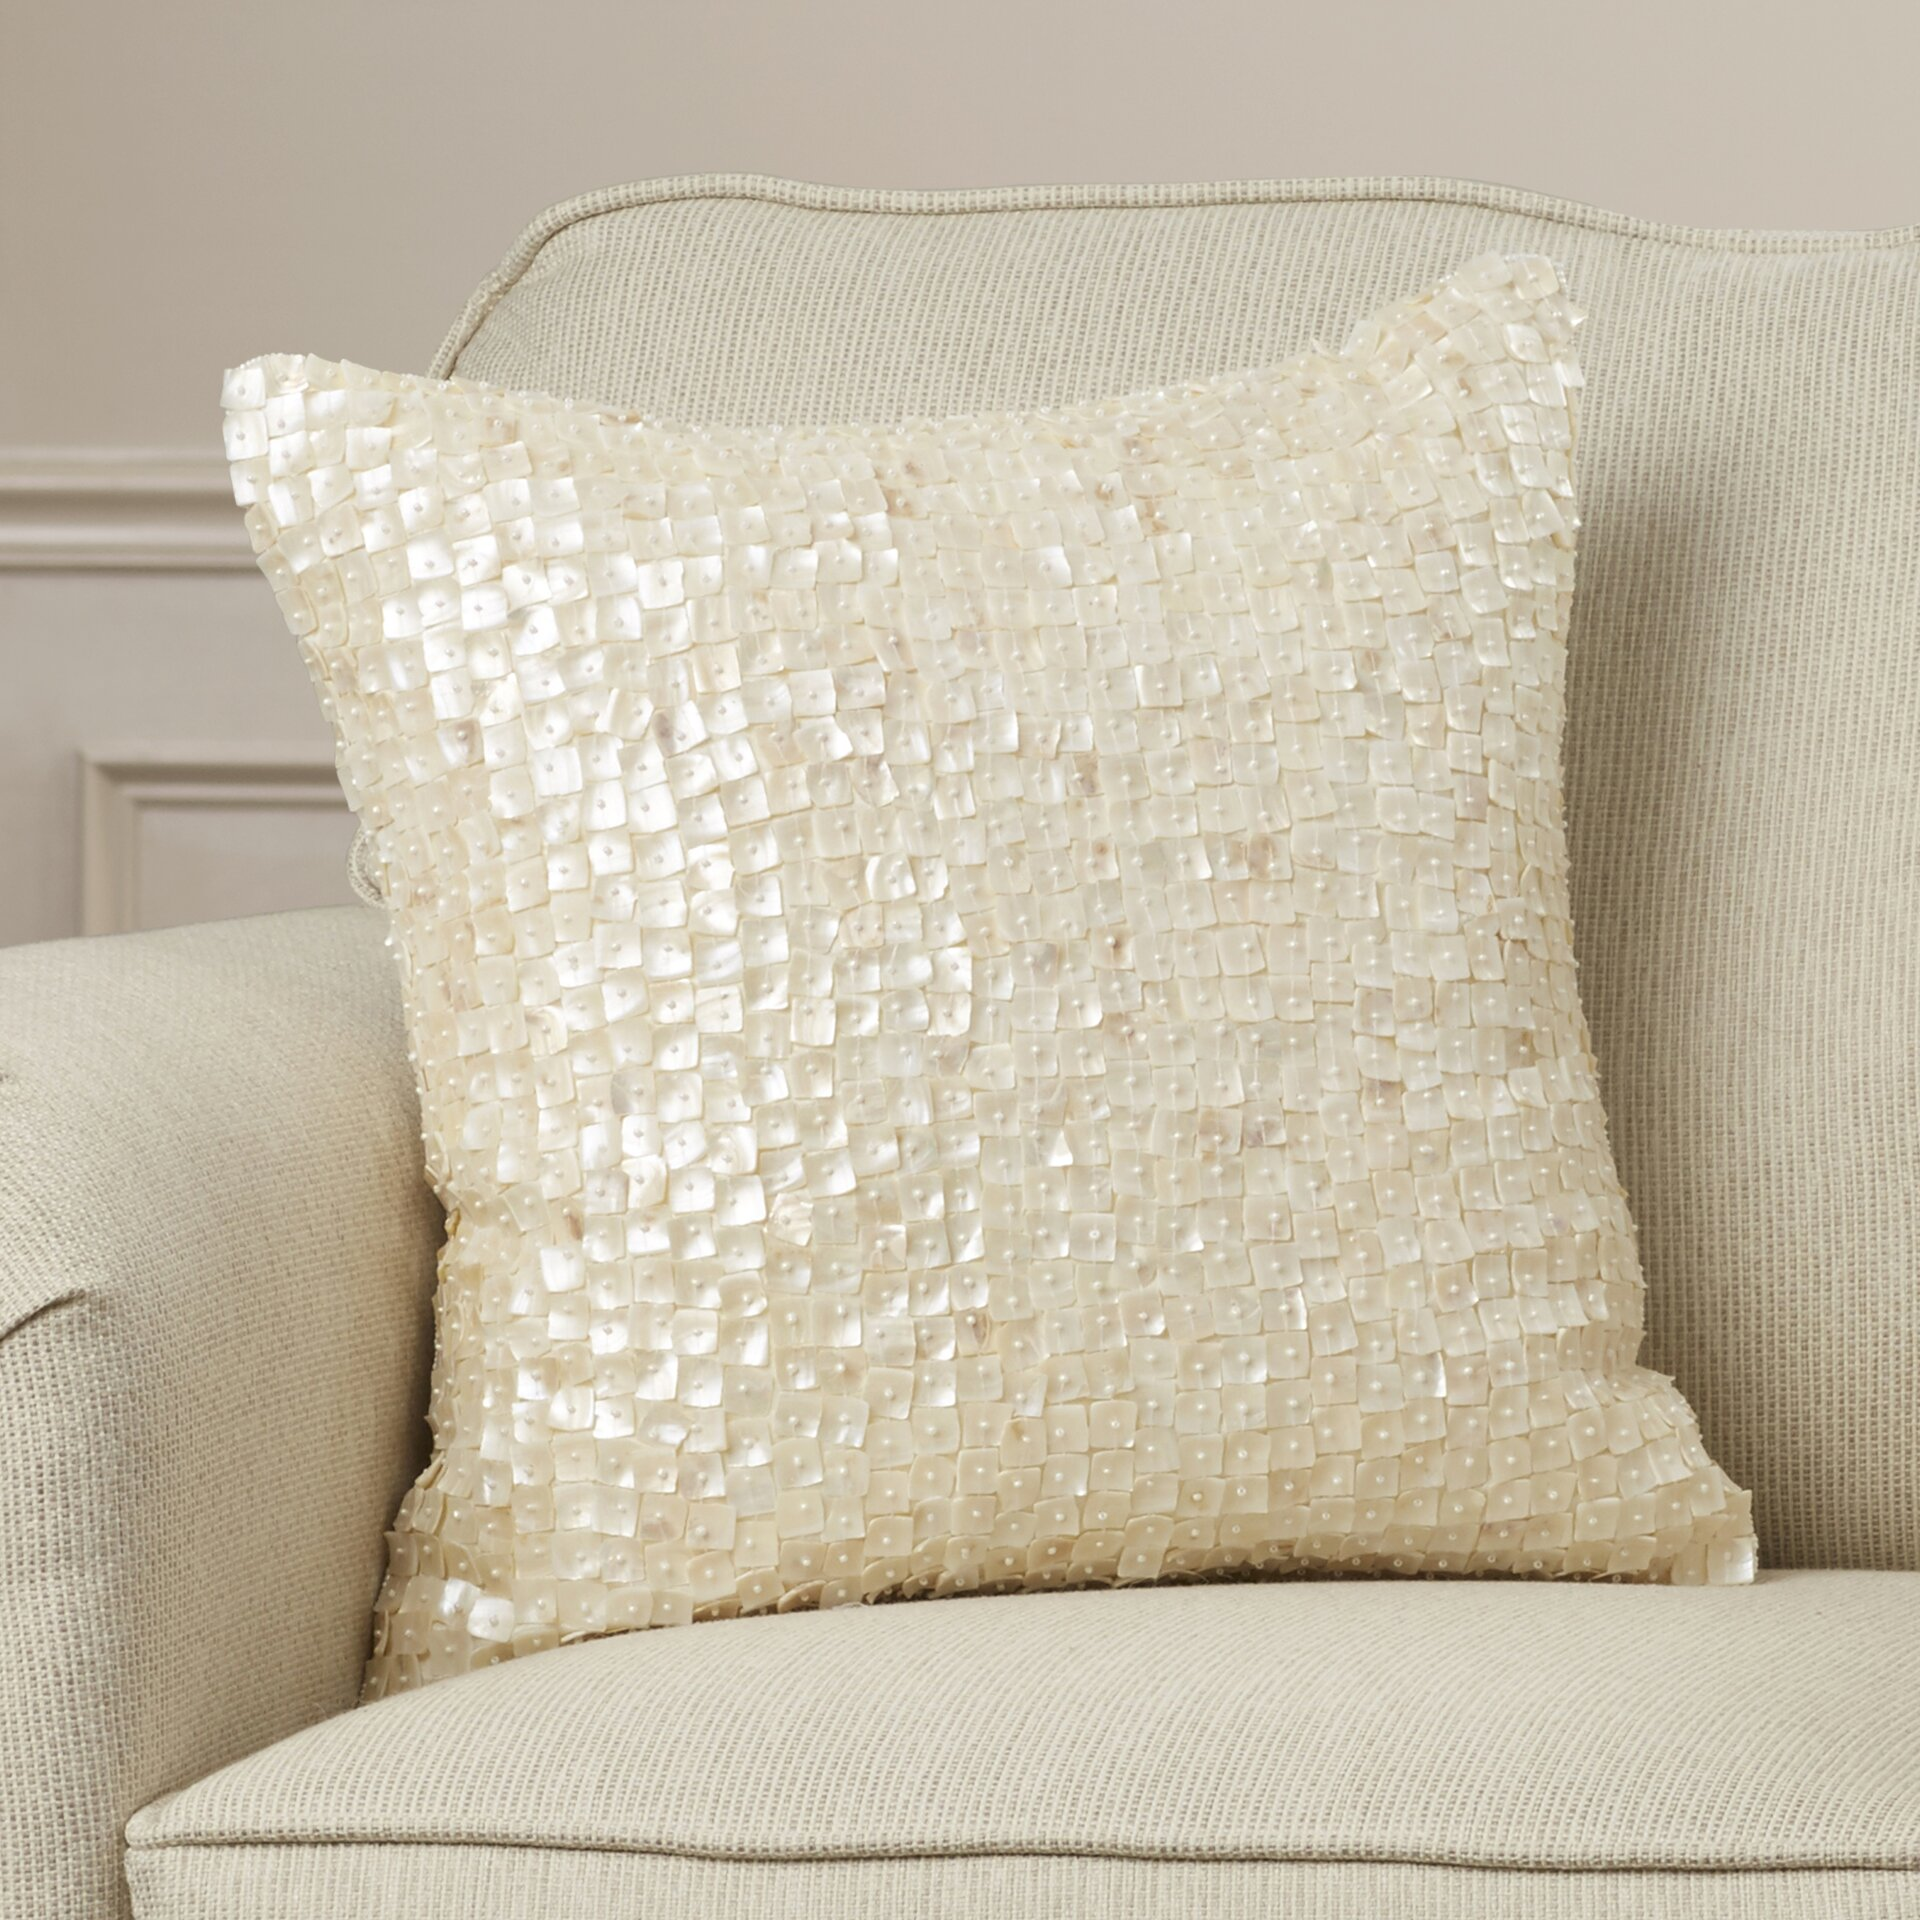 Decorative Pillow With Pearls : House of Hampton Vincent Pearl Throw Pillow & Reviews Wayfair